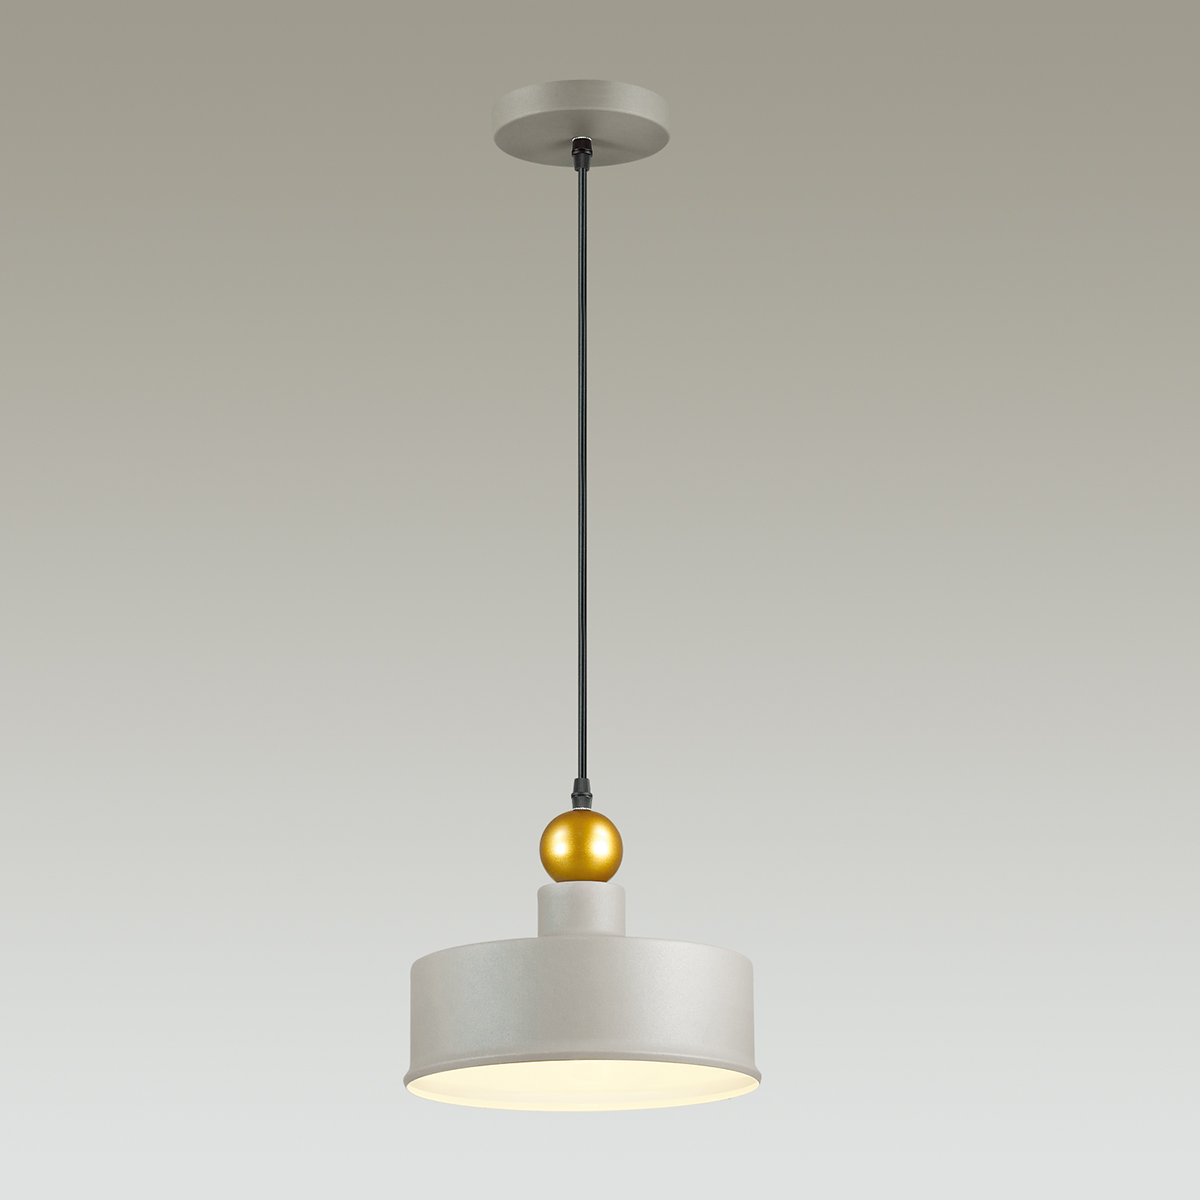 Подвес ODEON LIGHT арт. 4089/1